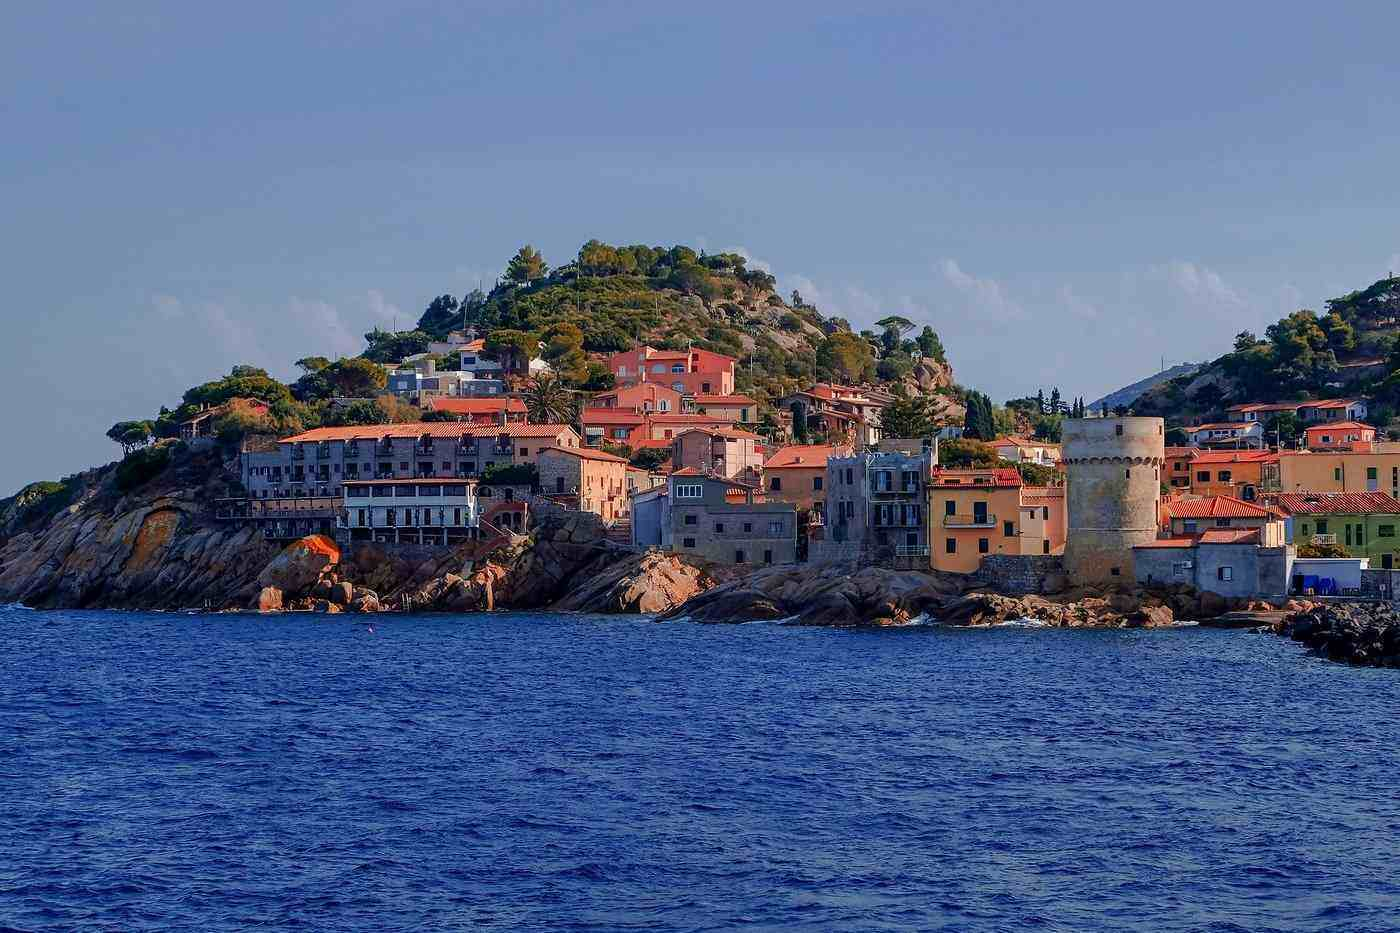 elba, italy - 8 best places to visit in europe in spring